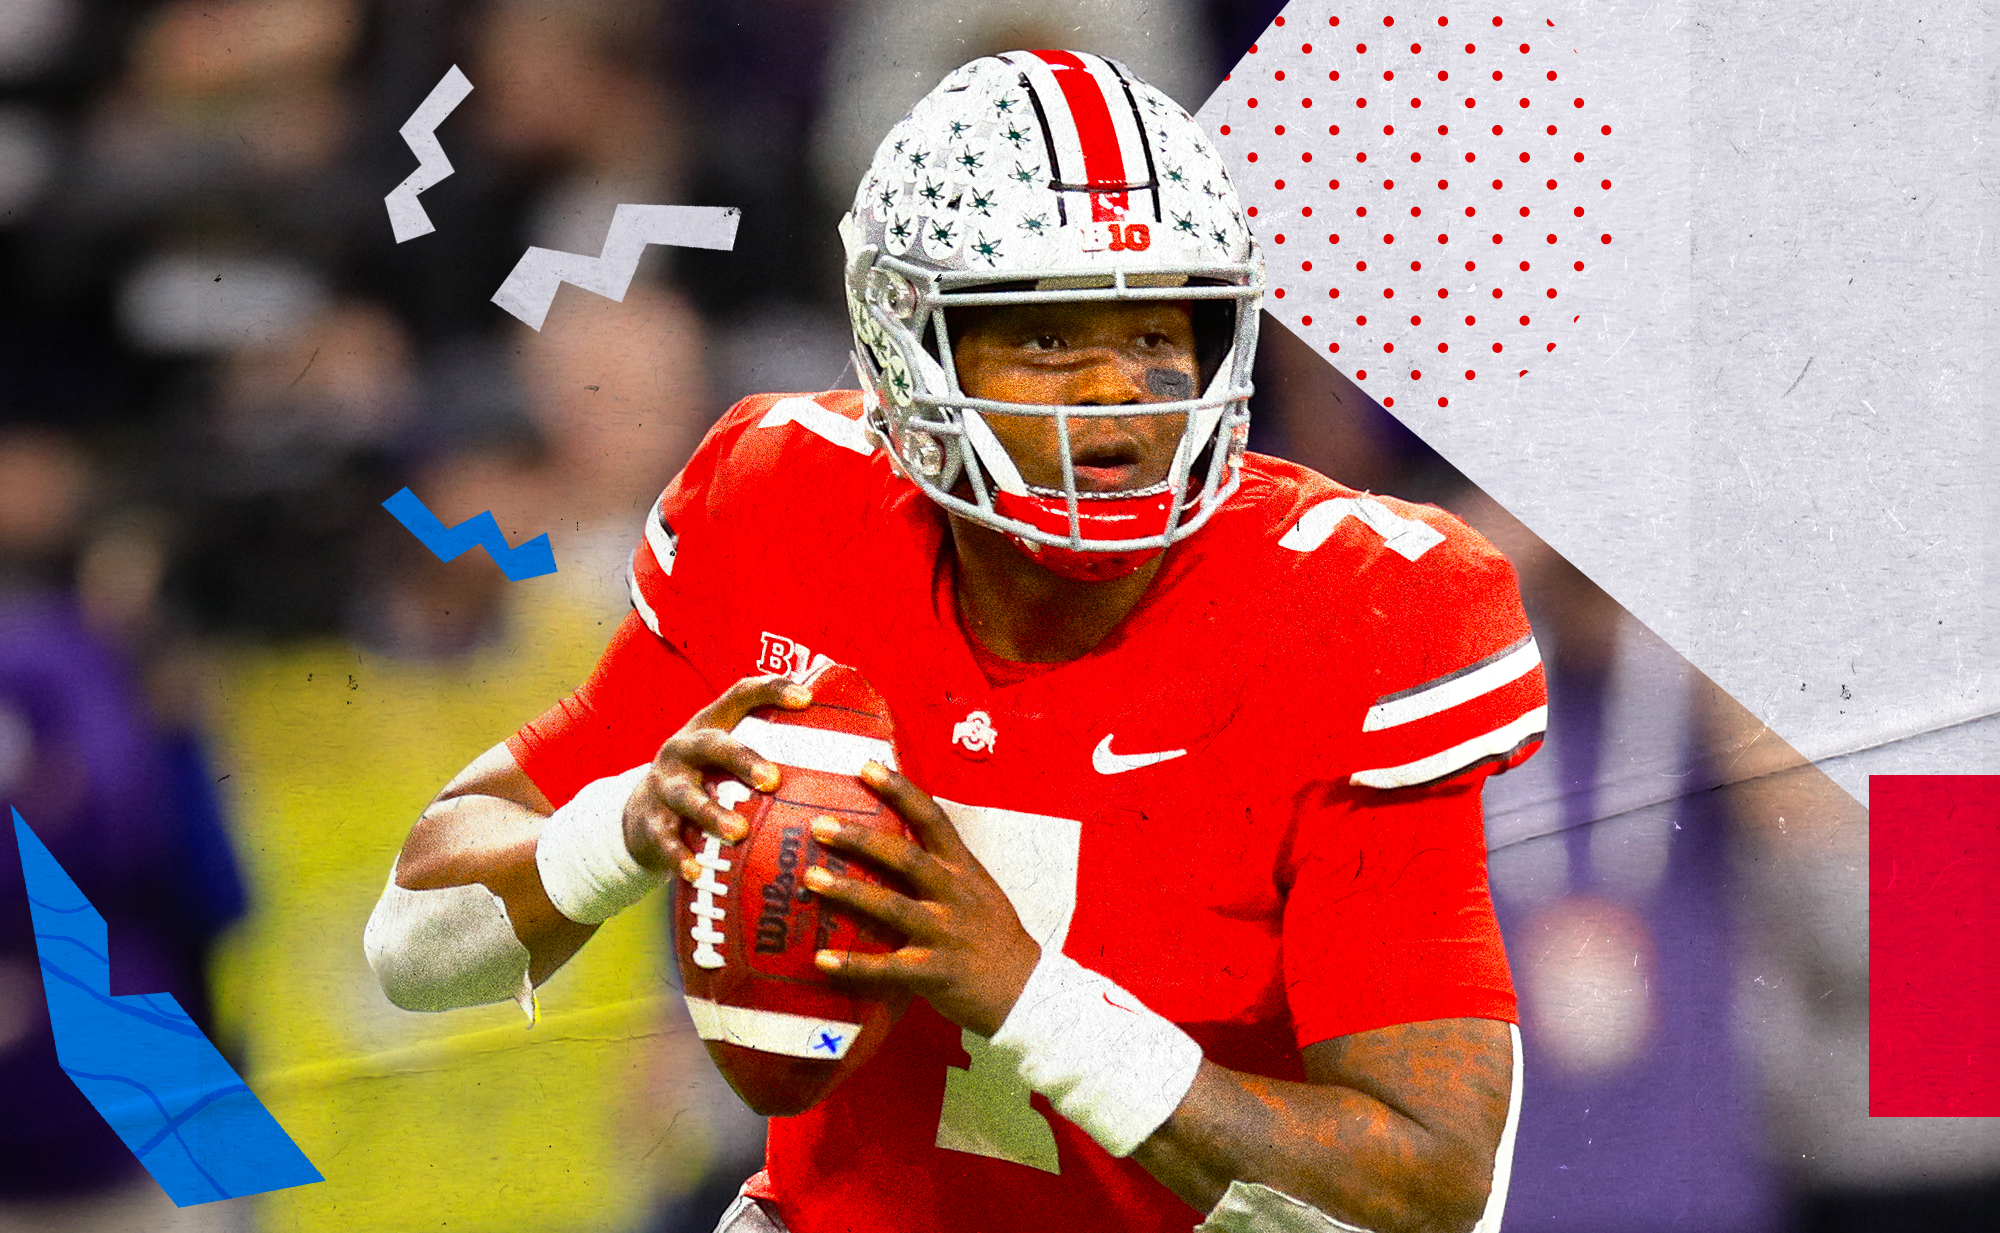 Dwayne Haskins isn't perfect, but he has the makings of an NFL franchise quarterback